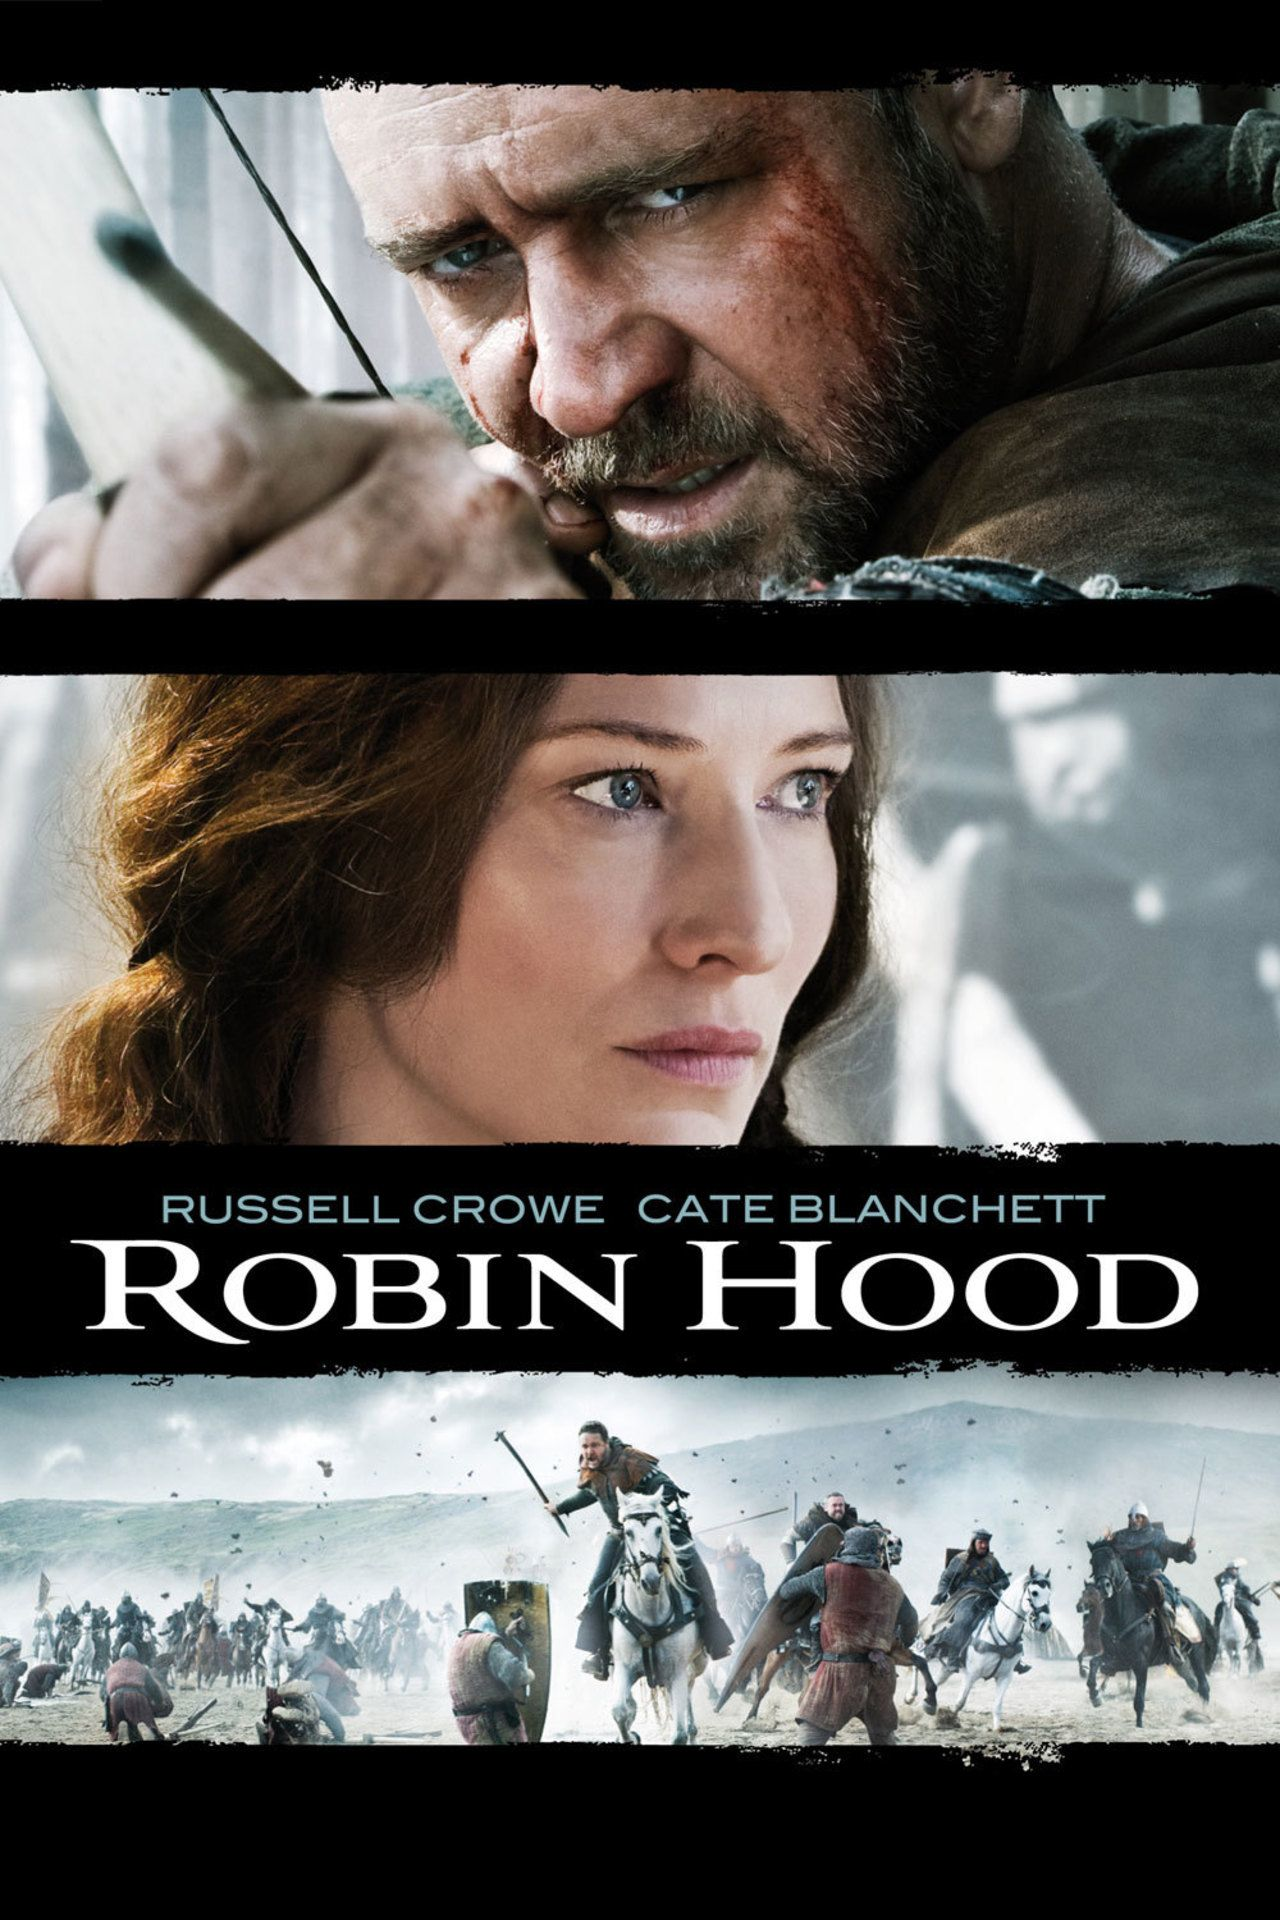 Robin Hood 2010 Matthew Played The Sheriff Of Nottingham Robin Hood Full Movies Online Free Free Movies Online